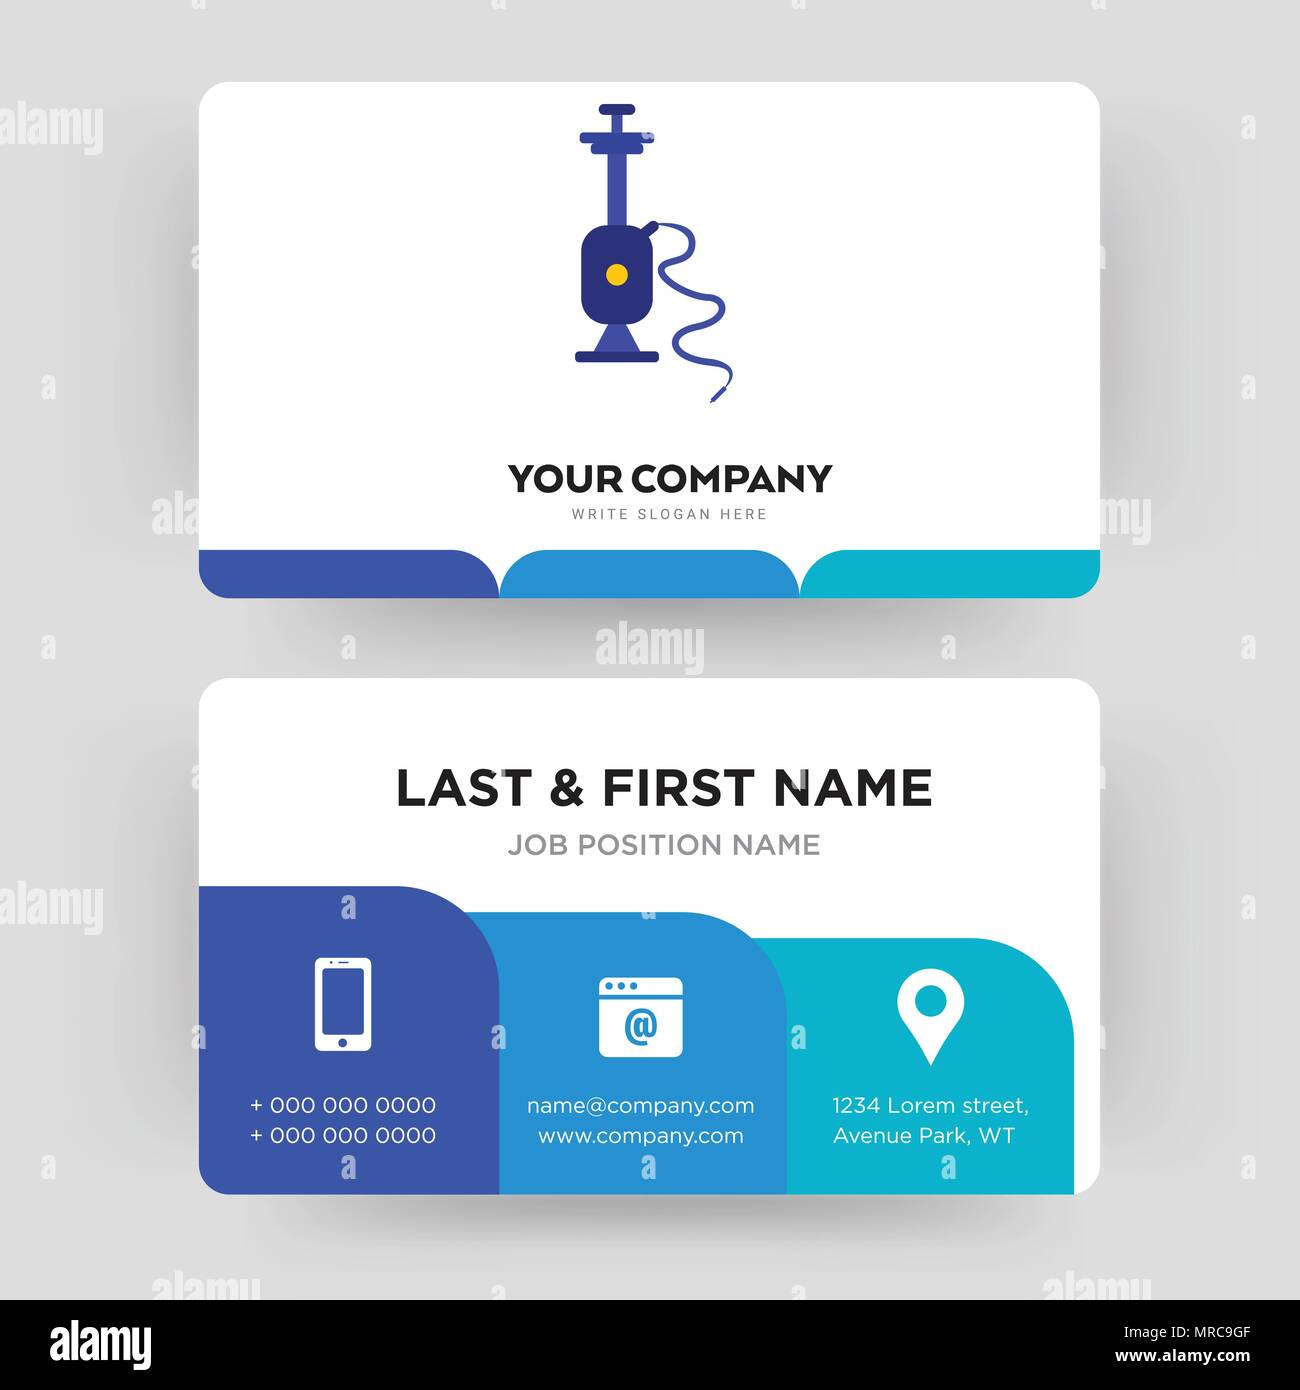 Shisha business card design template visiting for your company shisha business card design template visiting for your company modern creative and clean identity card vector reheart Images